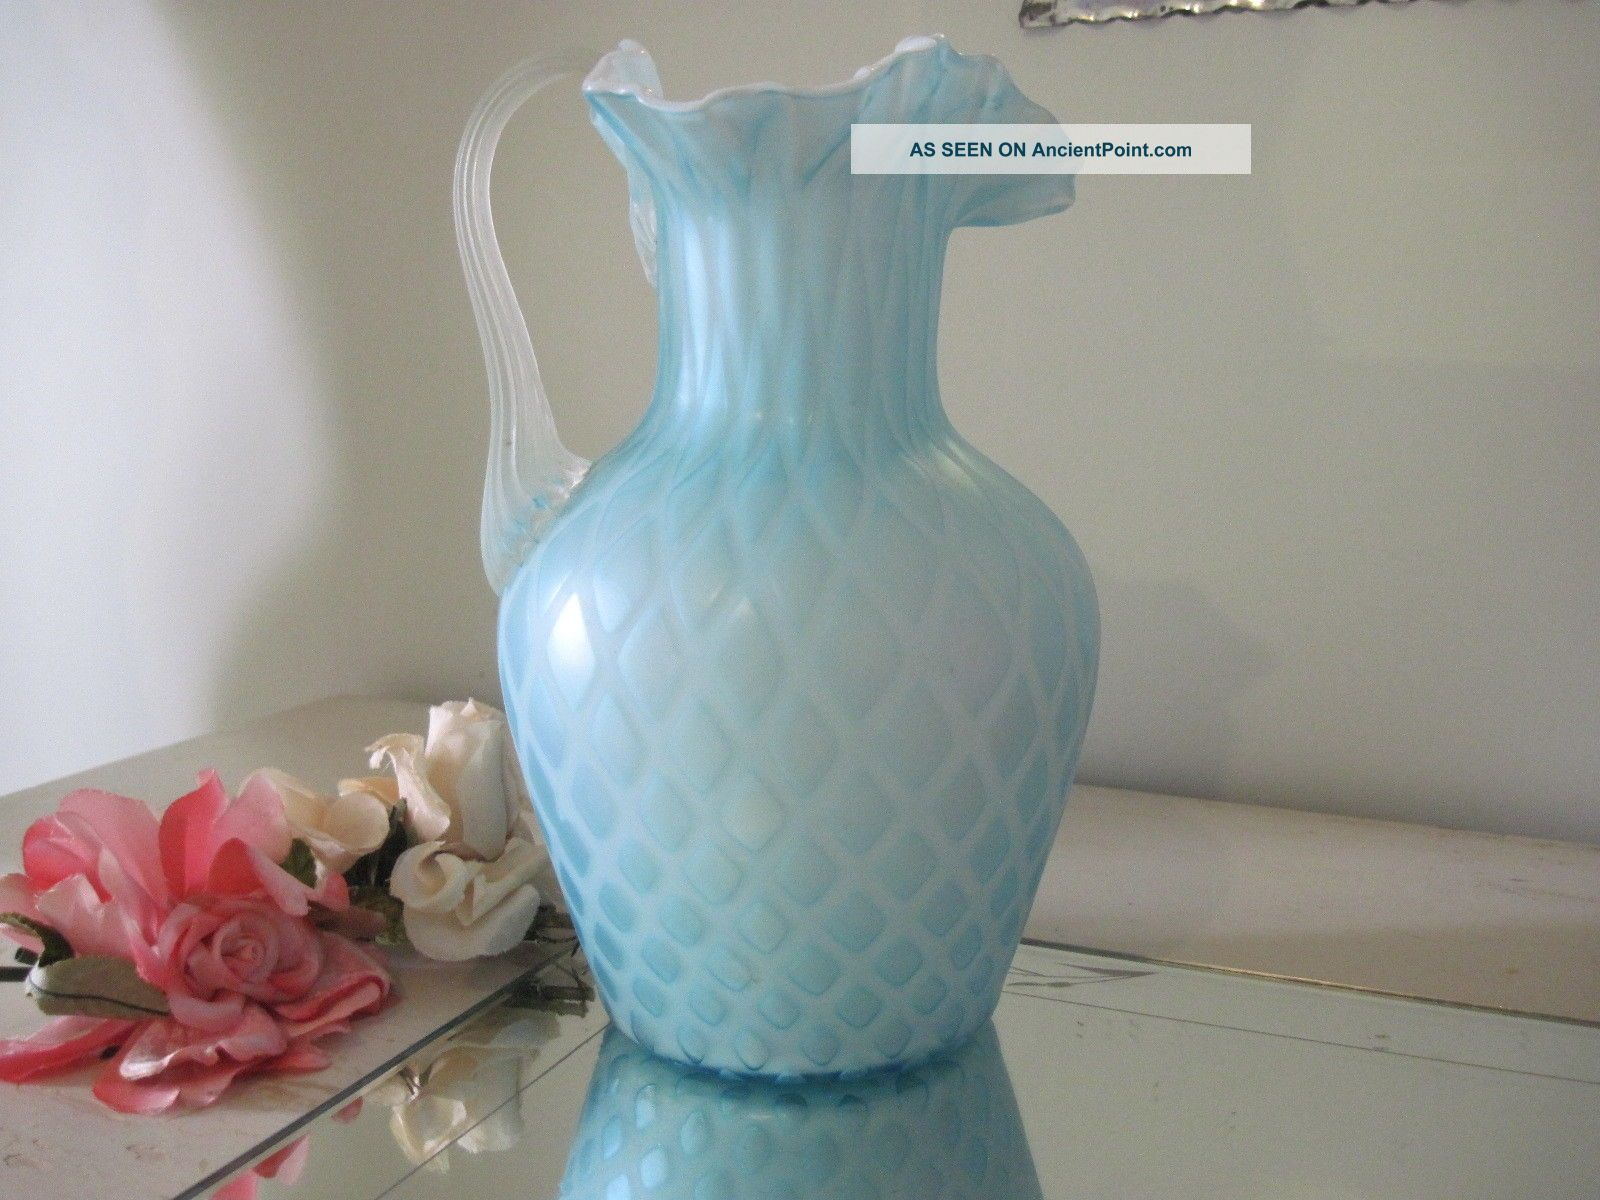 Antique Soft Blue Quilted Satin Glass Pitcher W/ruffle Pitchers photo